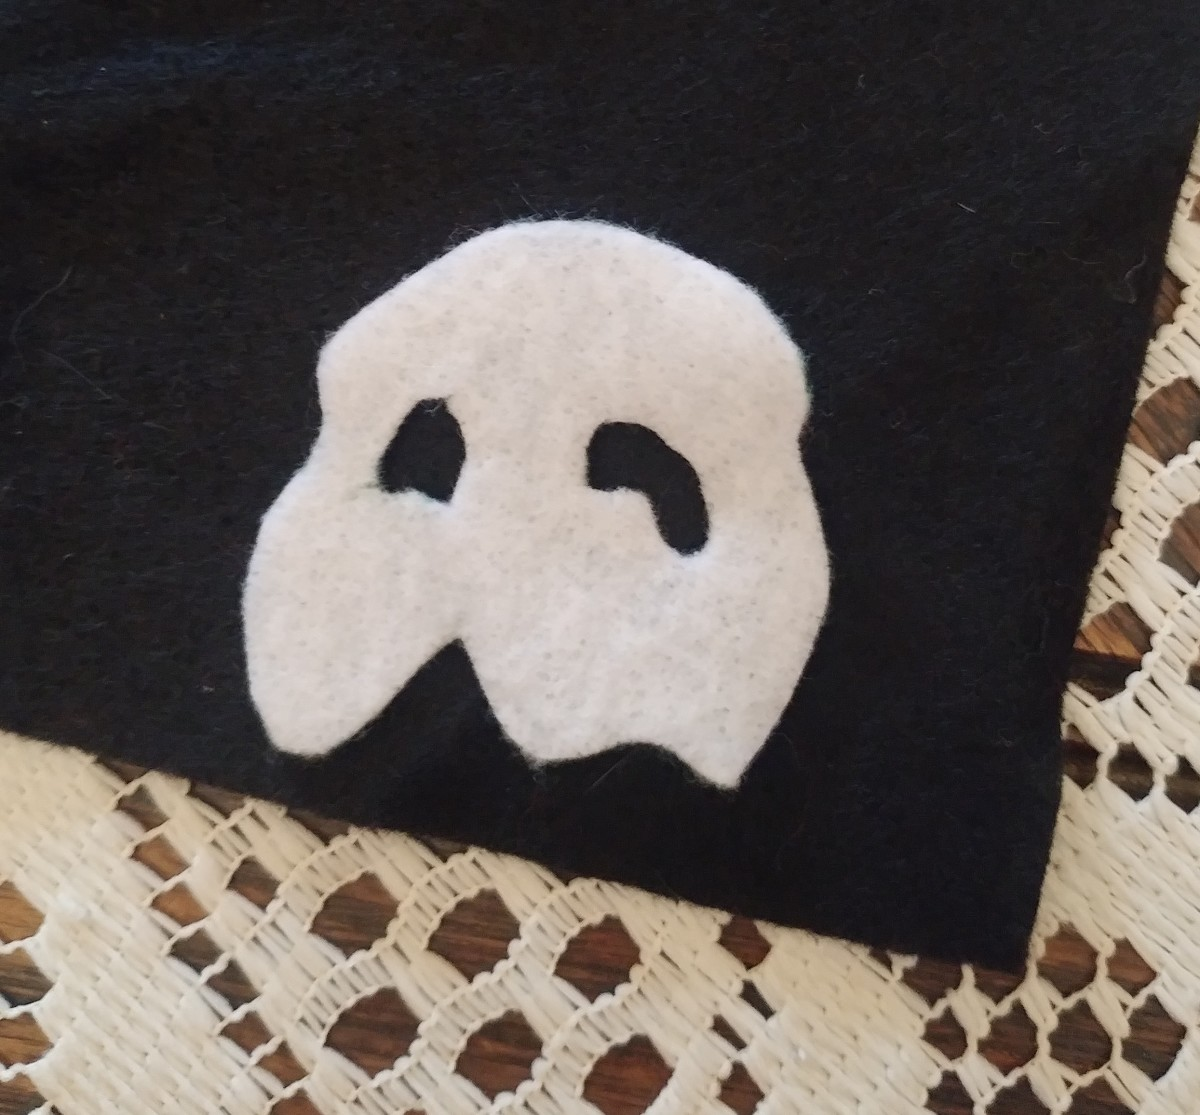 Cut the mask out of white felt.